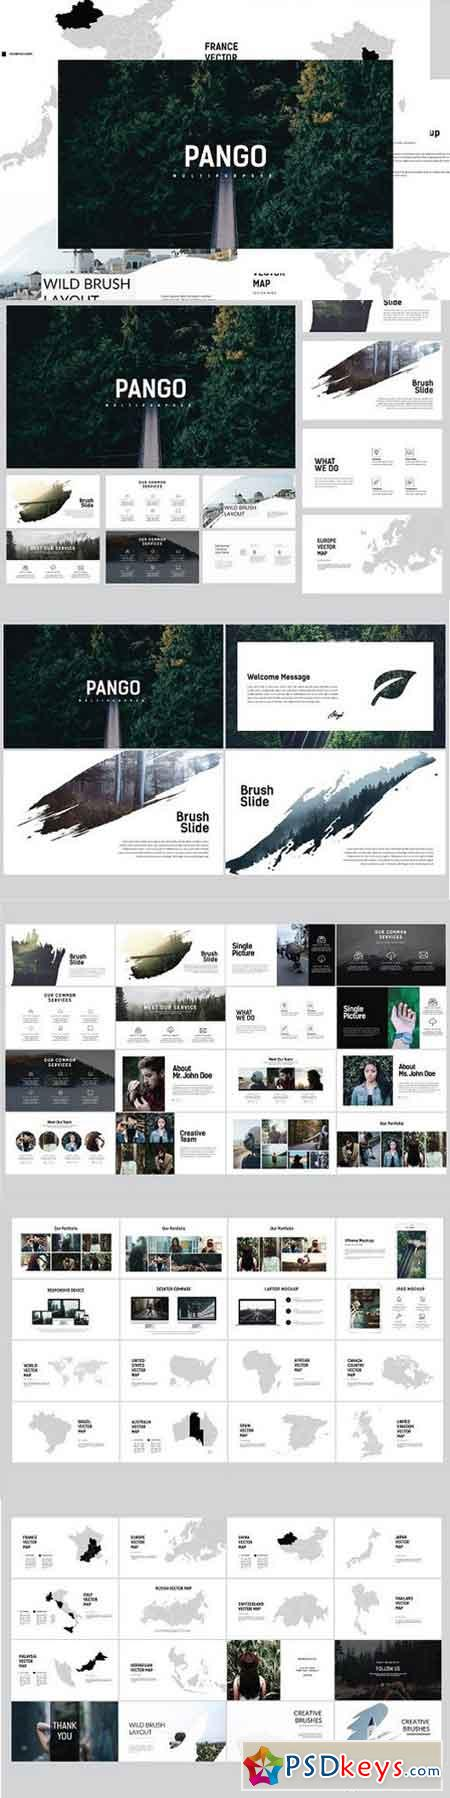 keynote brochure template - pango keynote template 1258802 free download photoshop